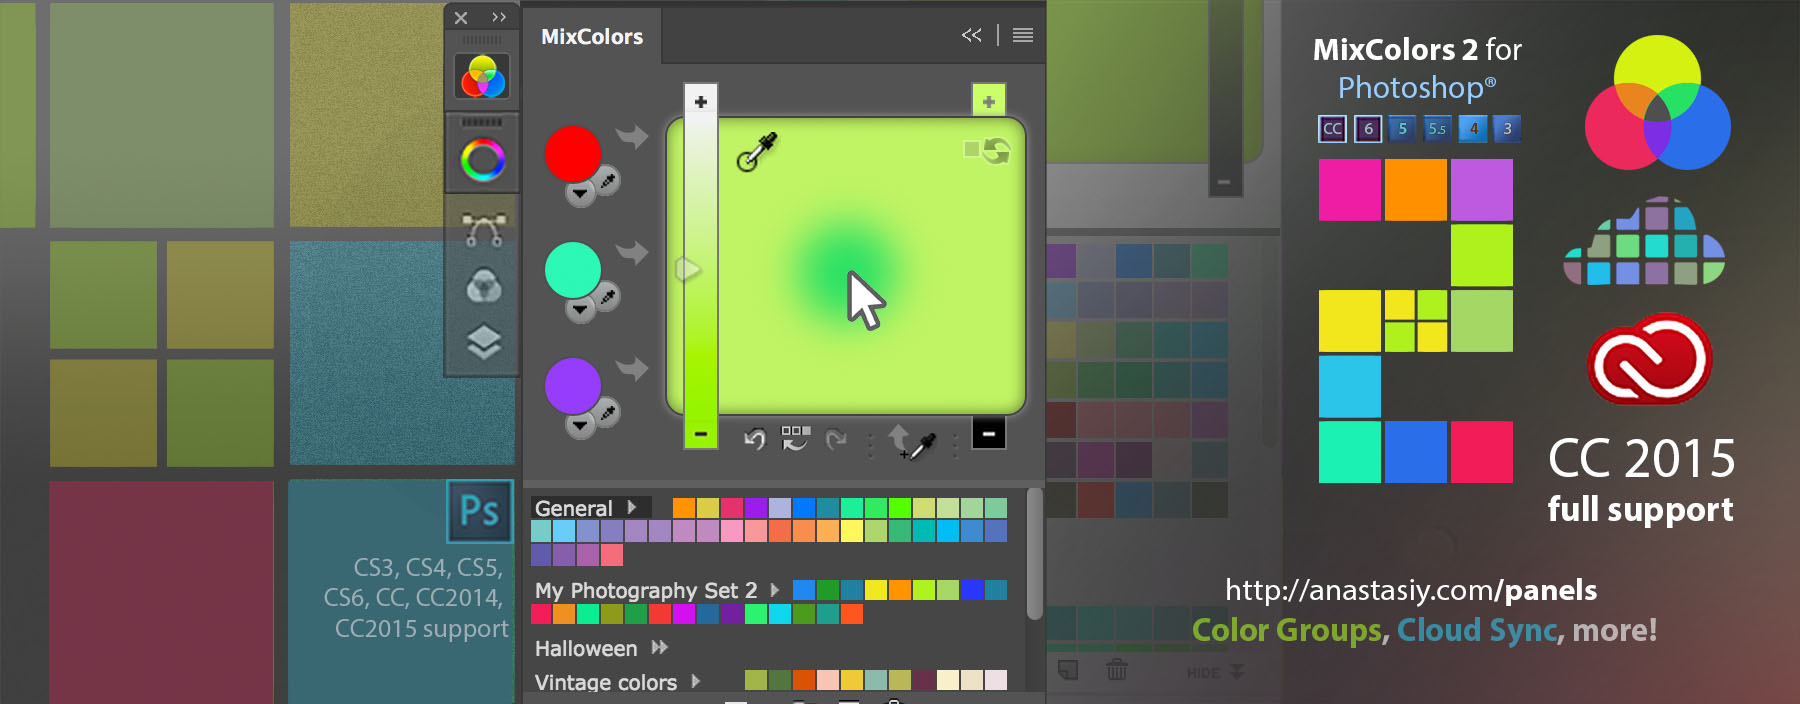 MixColors 2.0 for Photoshop with Swatch Colors Groups, Cloud Sync